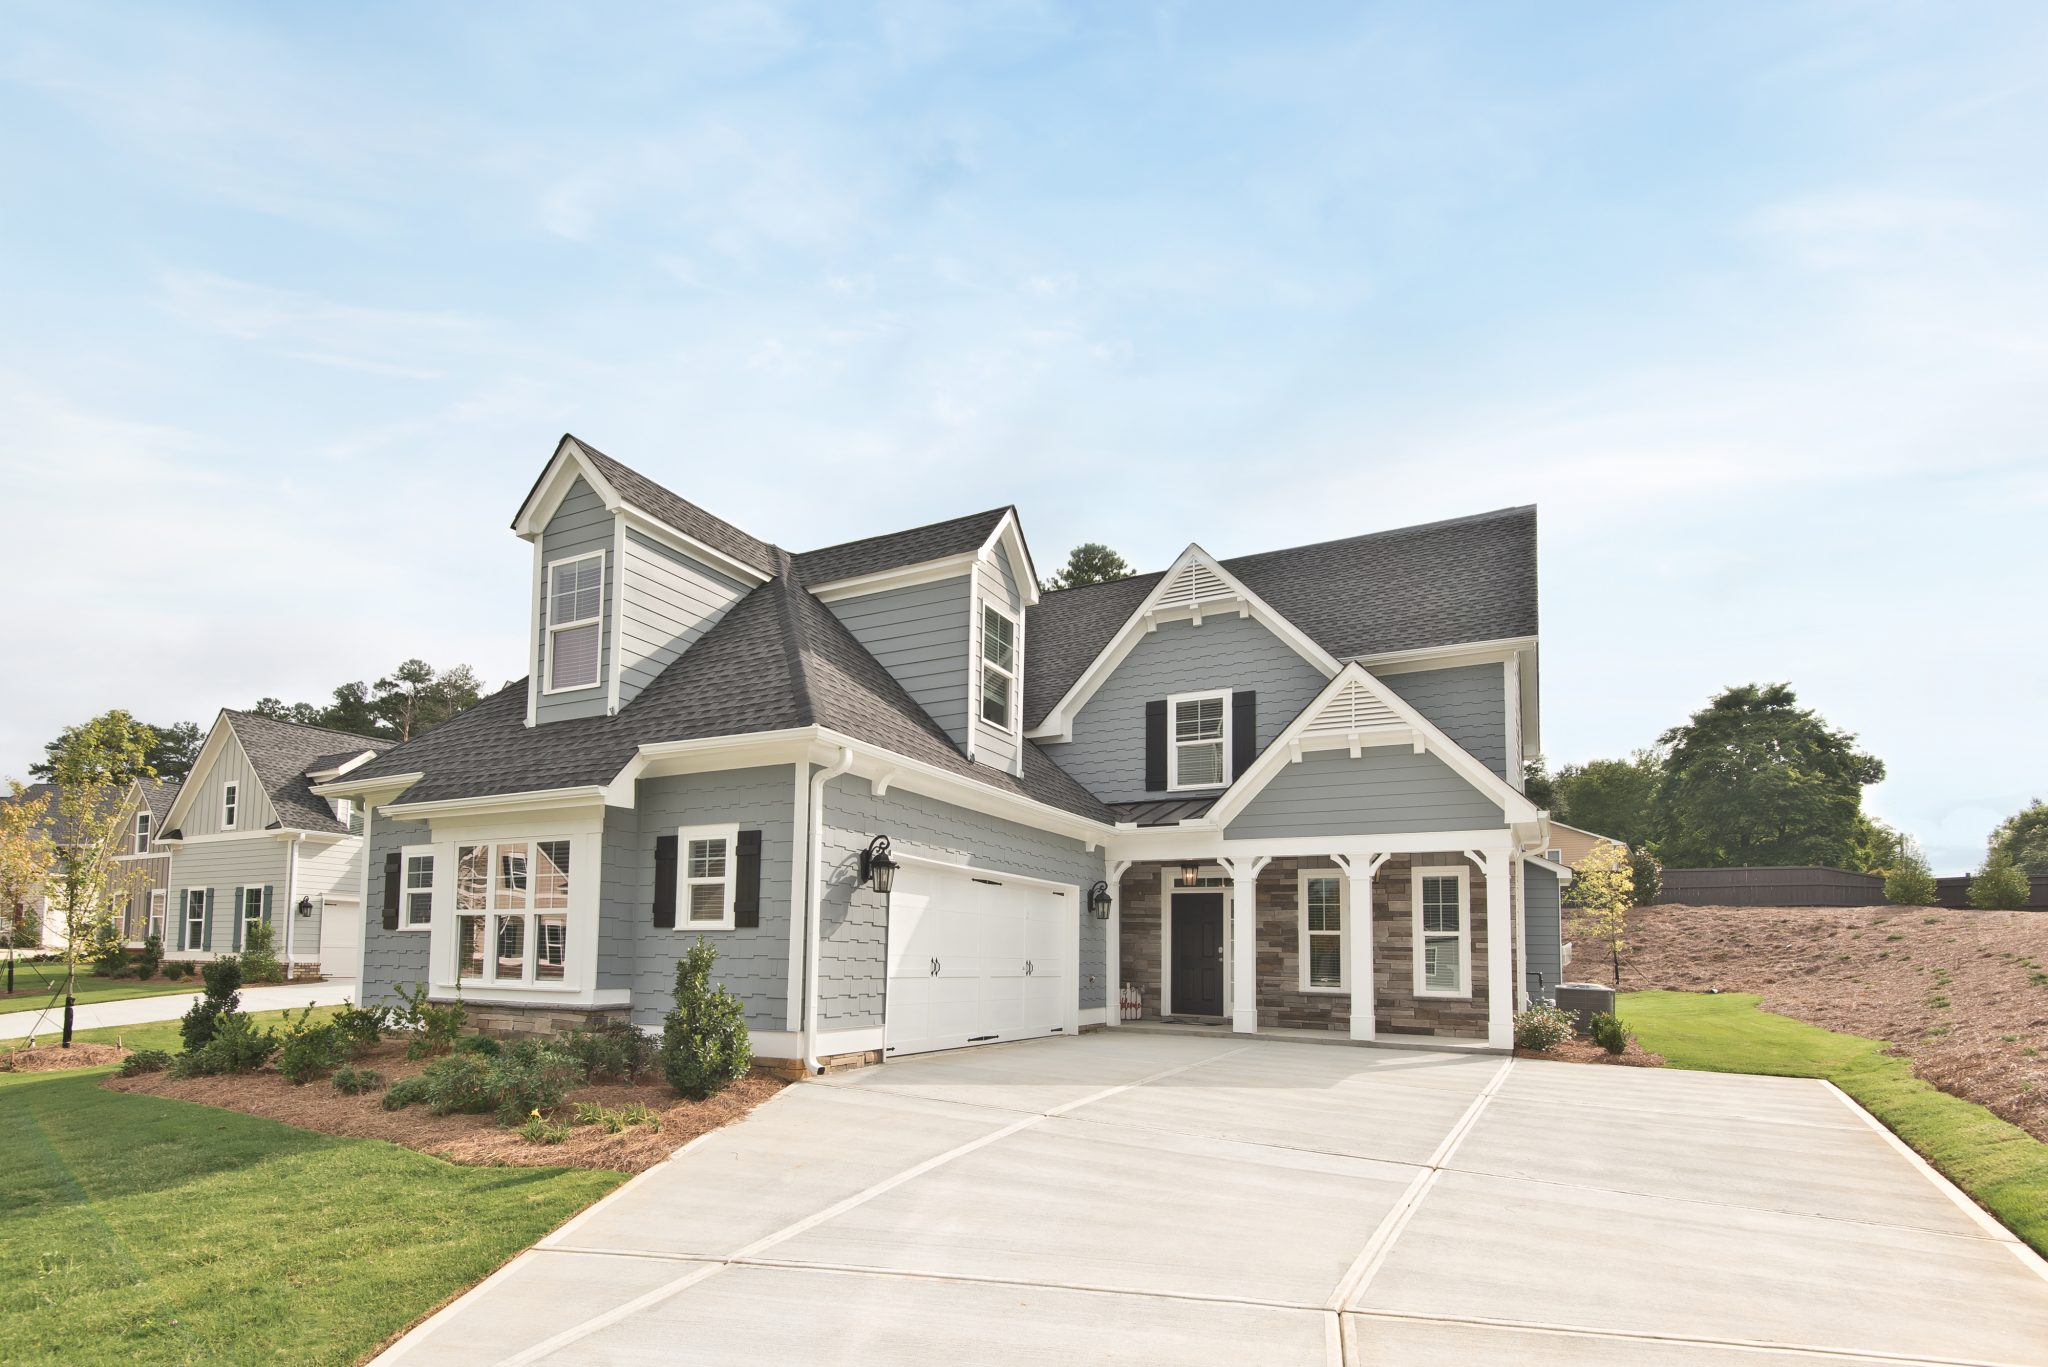 Sandtown Estates Lot 14 by Kerley Family Homes - One of Builder Next 100 2020